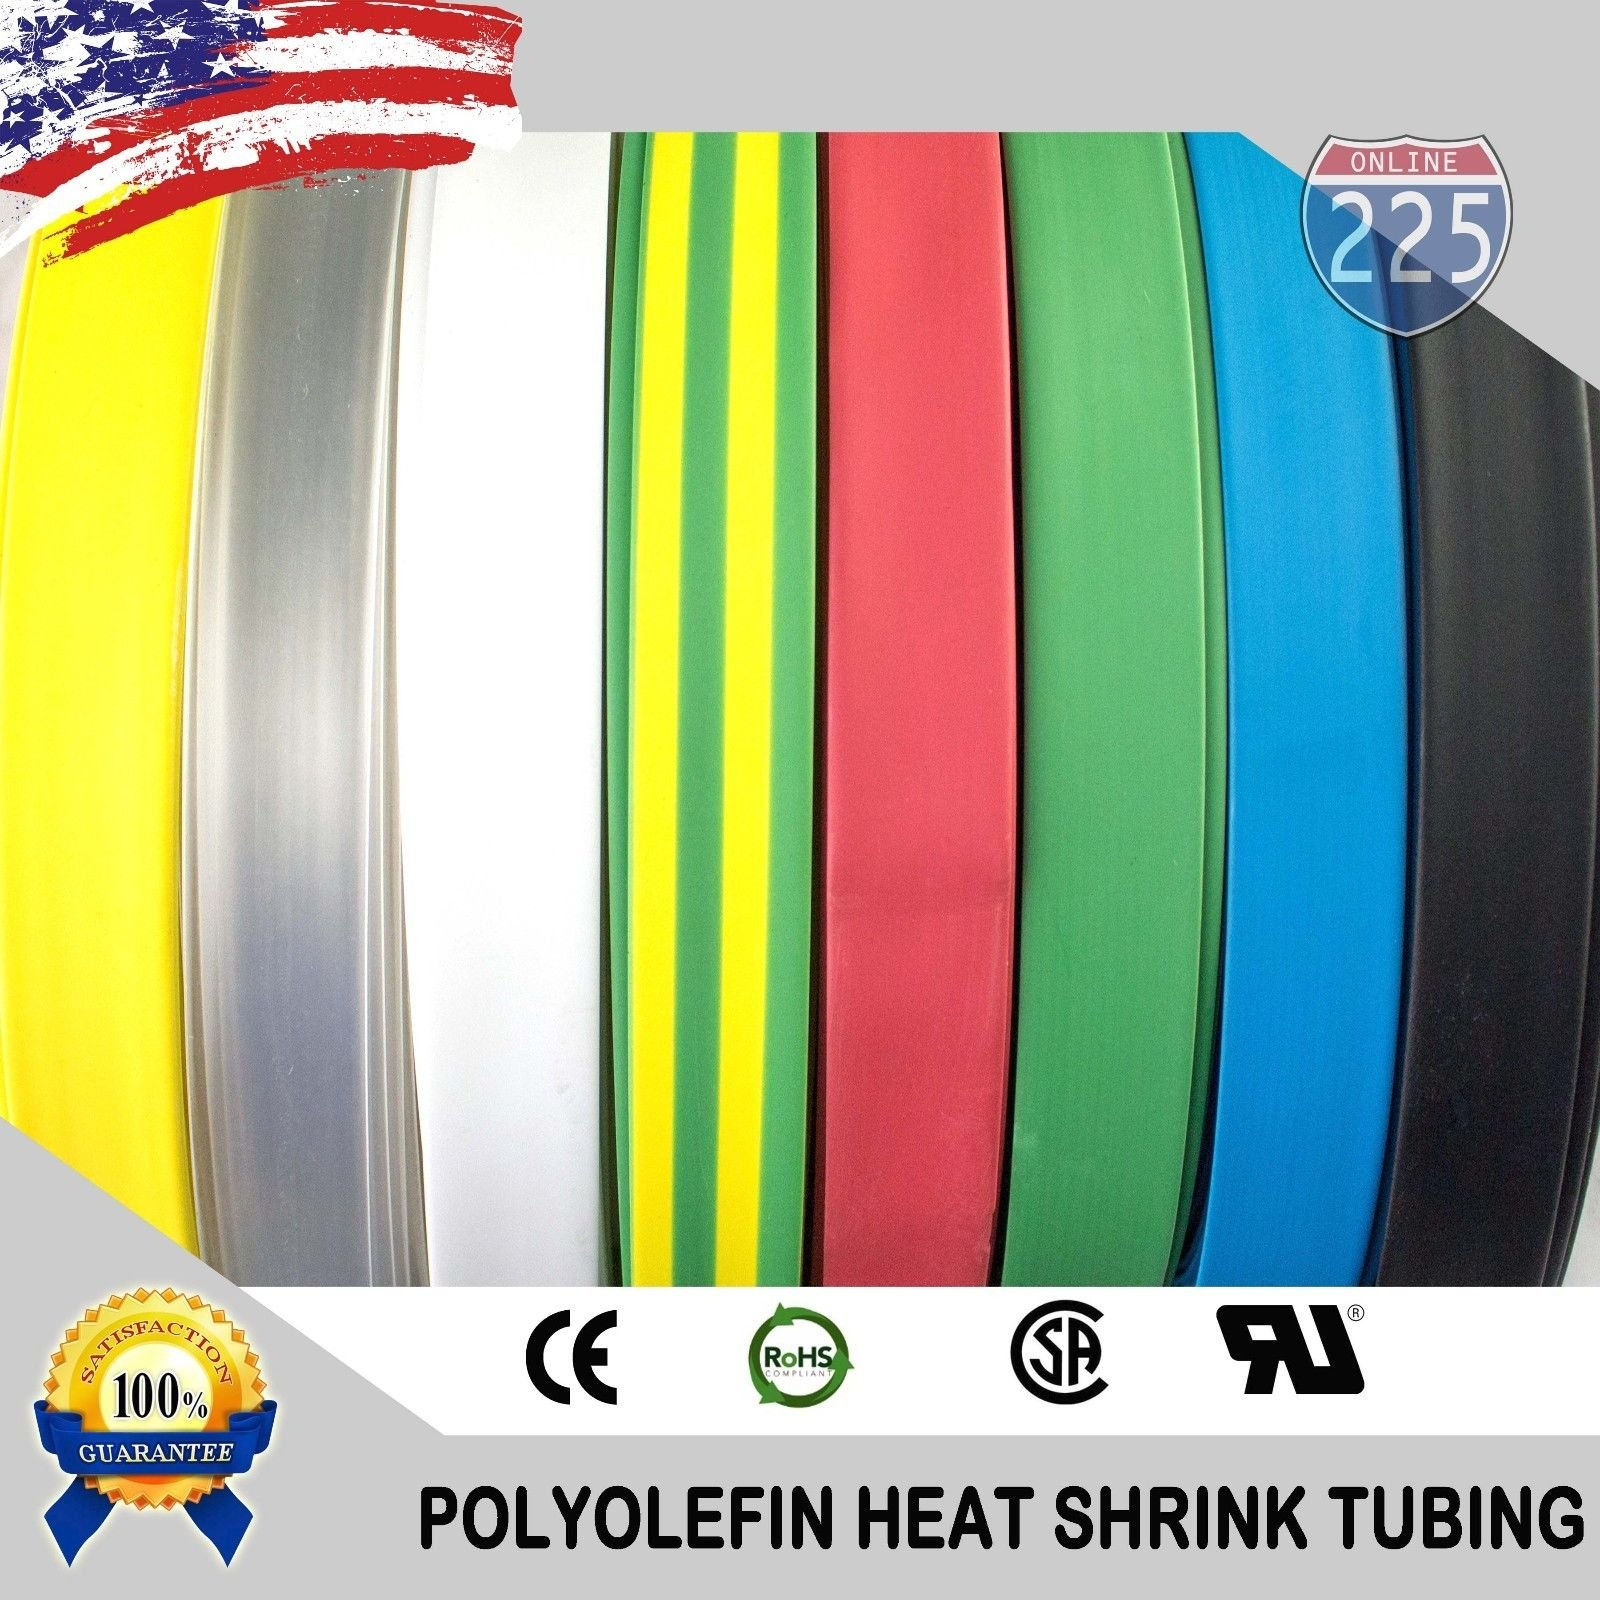 25 FT 3/4'' 19mm Polyolefin Clear Heat Shrink Tubing 2:1 Ratio by 225FWY (Image #2)